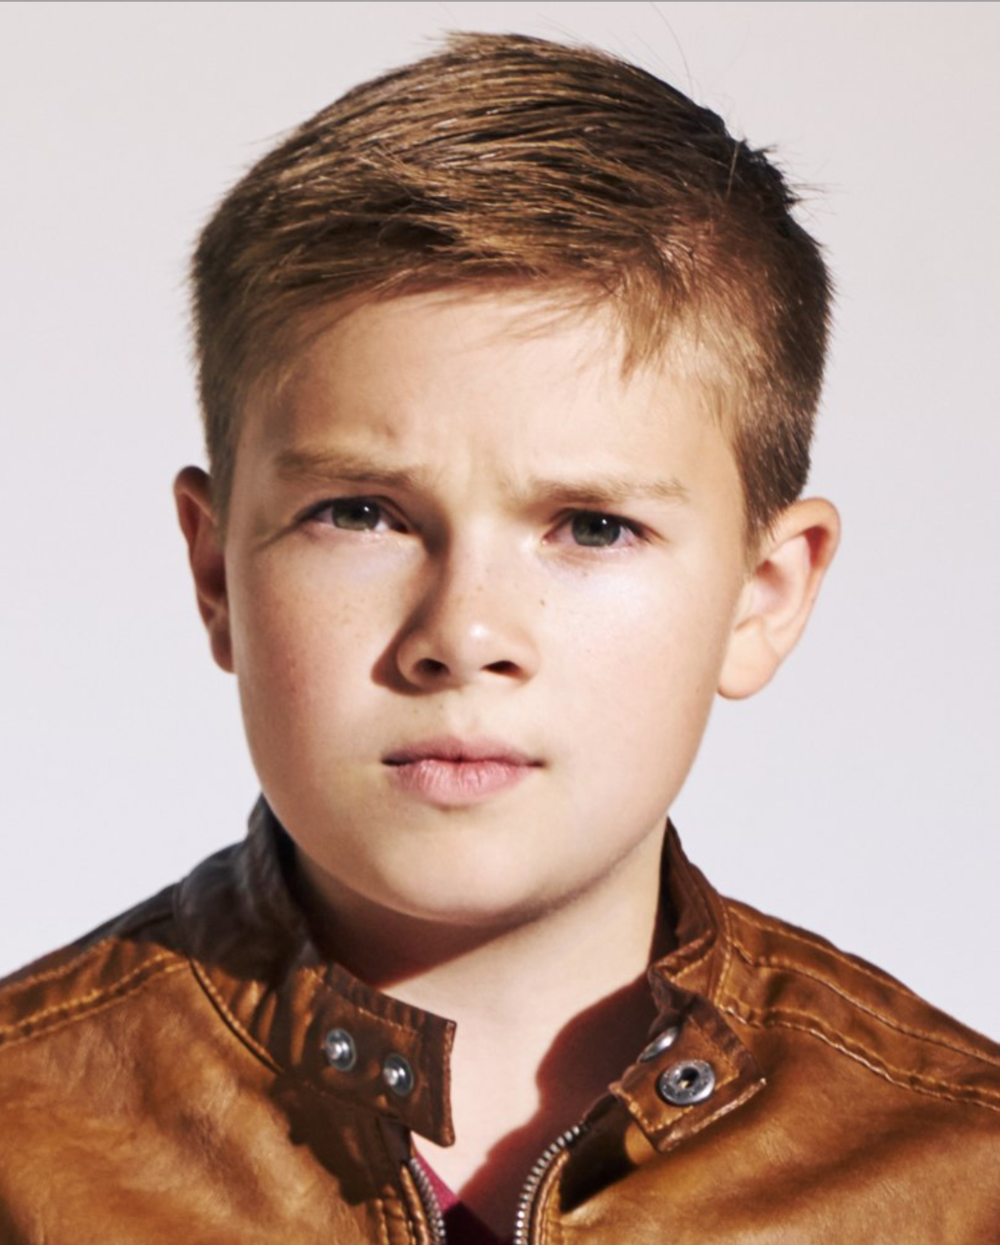 POPCHUCK ON THE BIG SCREEN! - Popchuck fans worldwide, get ready to be excited! Calgrove Media has just announced a 3-picture Deal With Acclaimed Child Movie Star Jet Jurgensmeyer For Beloved Popchuck Chronicles Series! Jet is set to play Neil, the chronicle's lovable lead. Click here to read more!